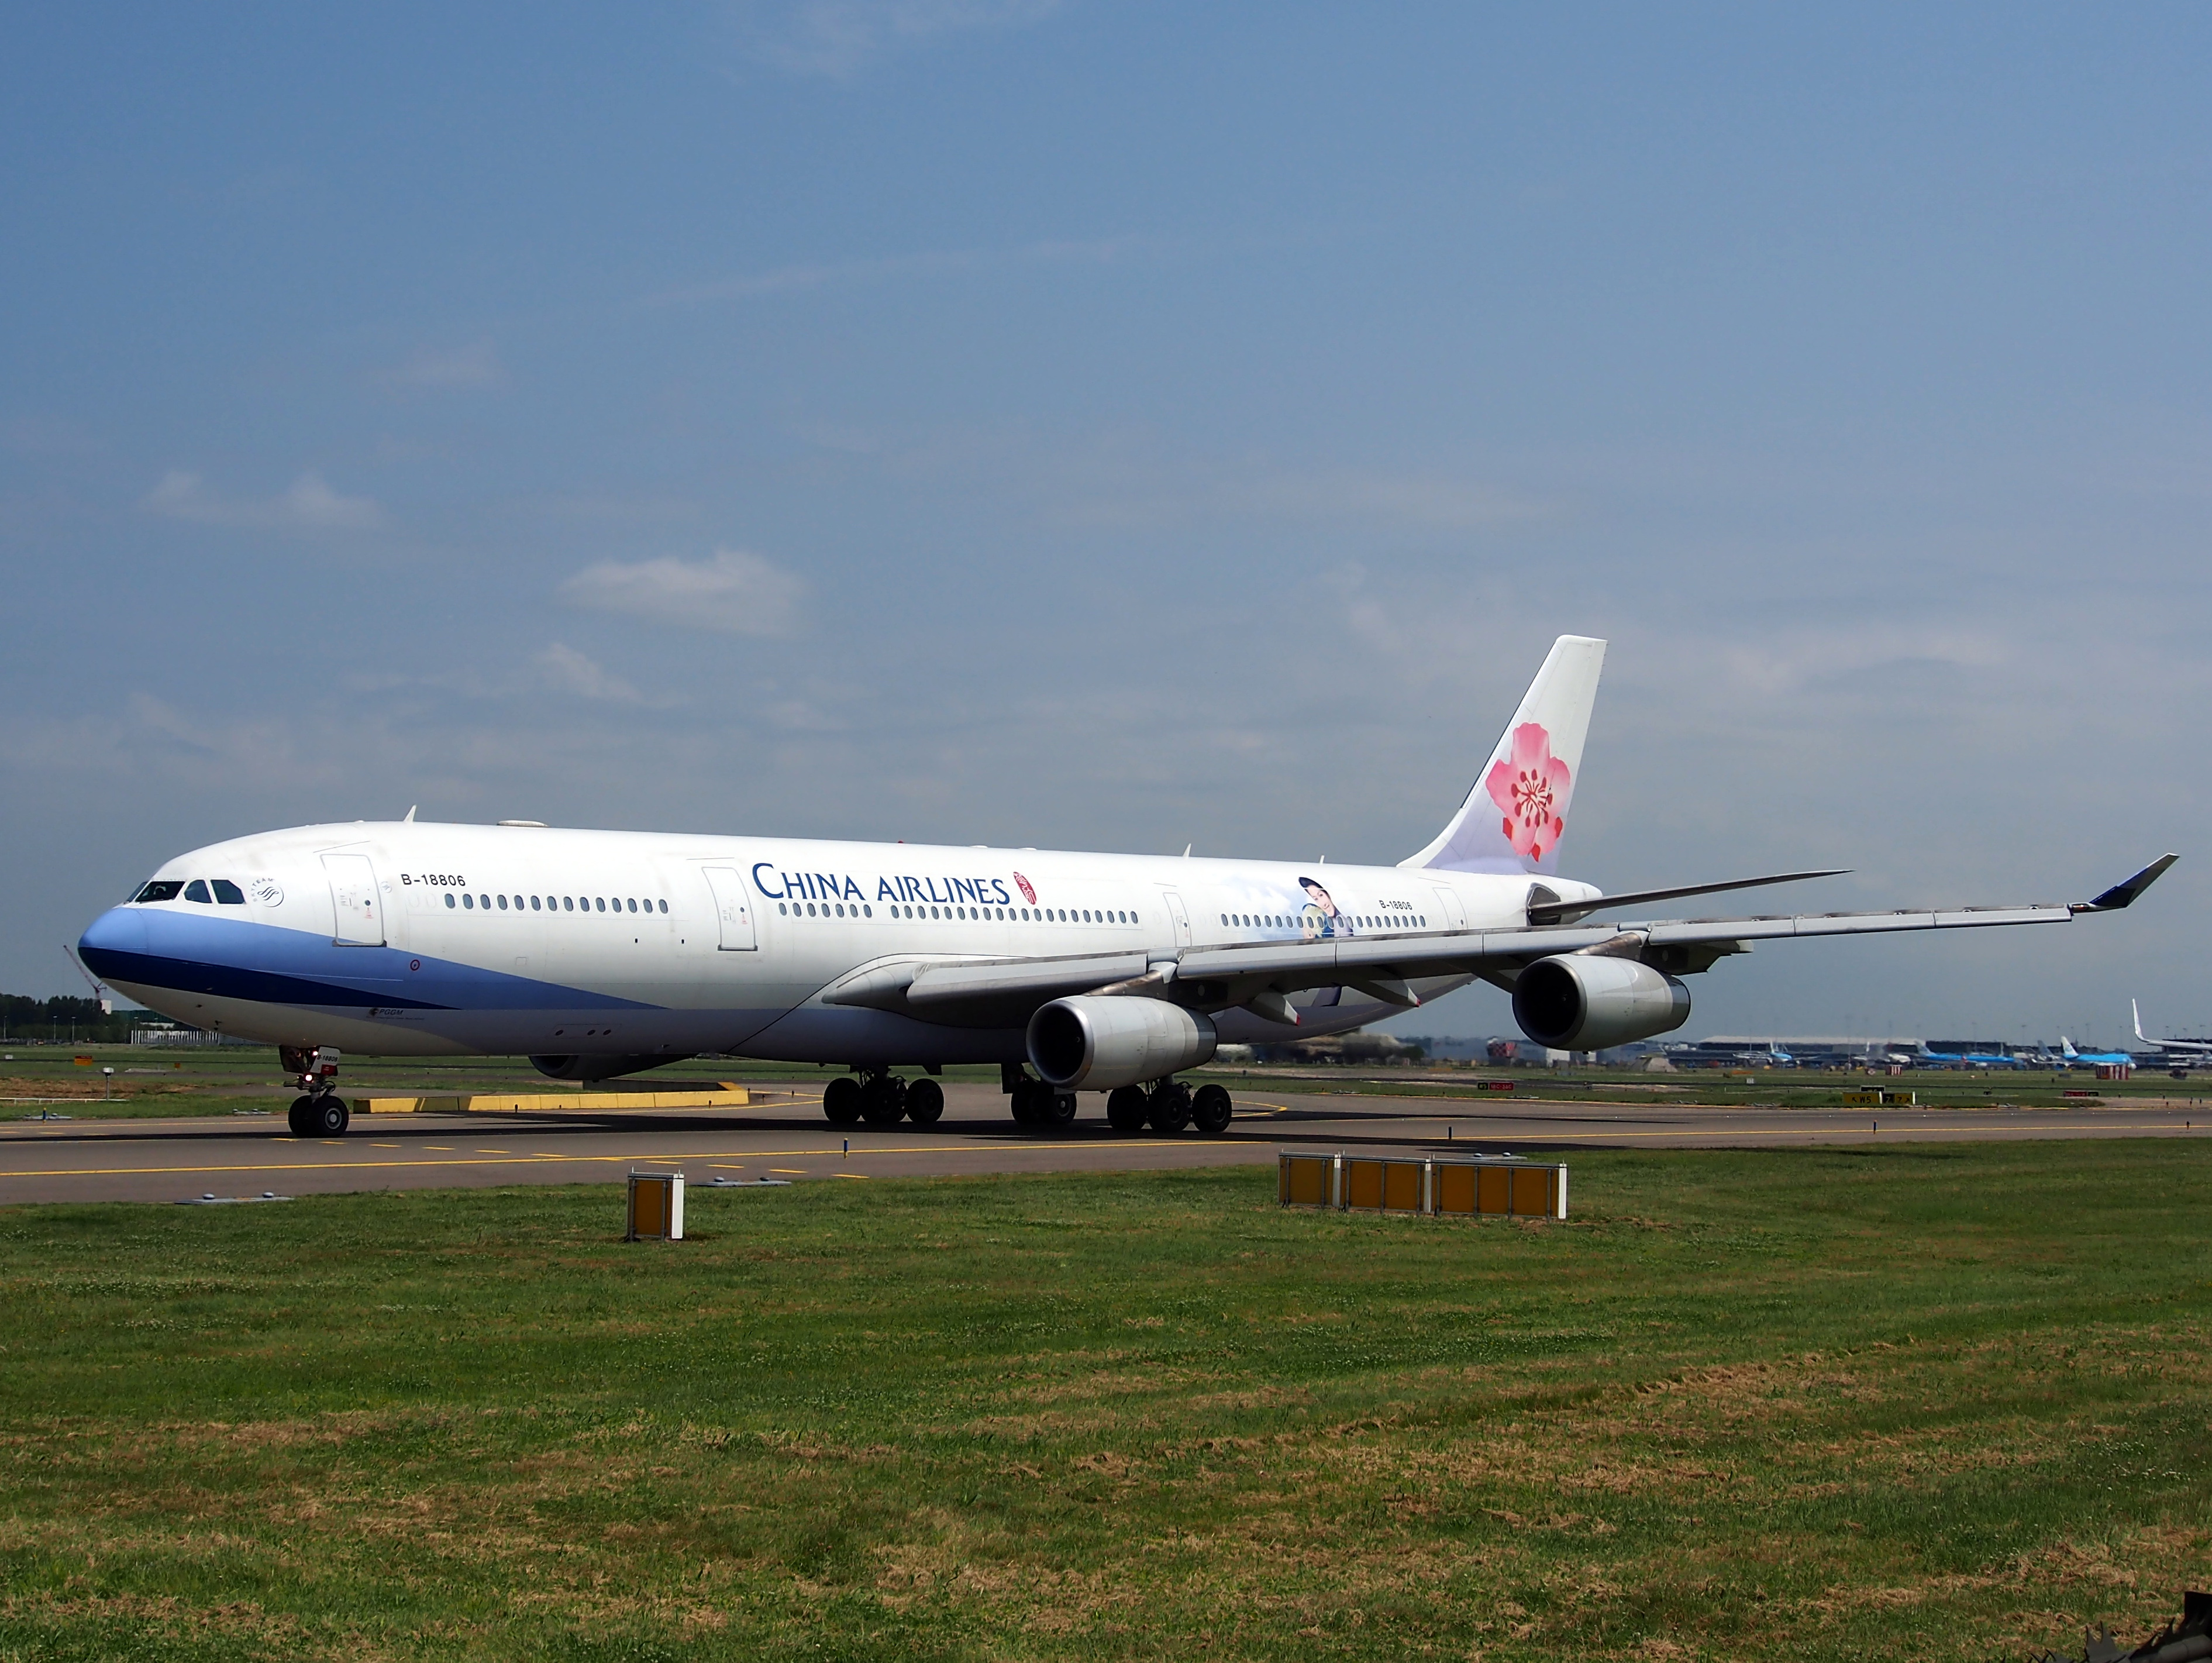 B-18806 China Airlines Airbus A340-313X - cn 433 pic3